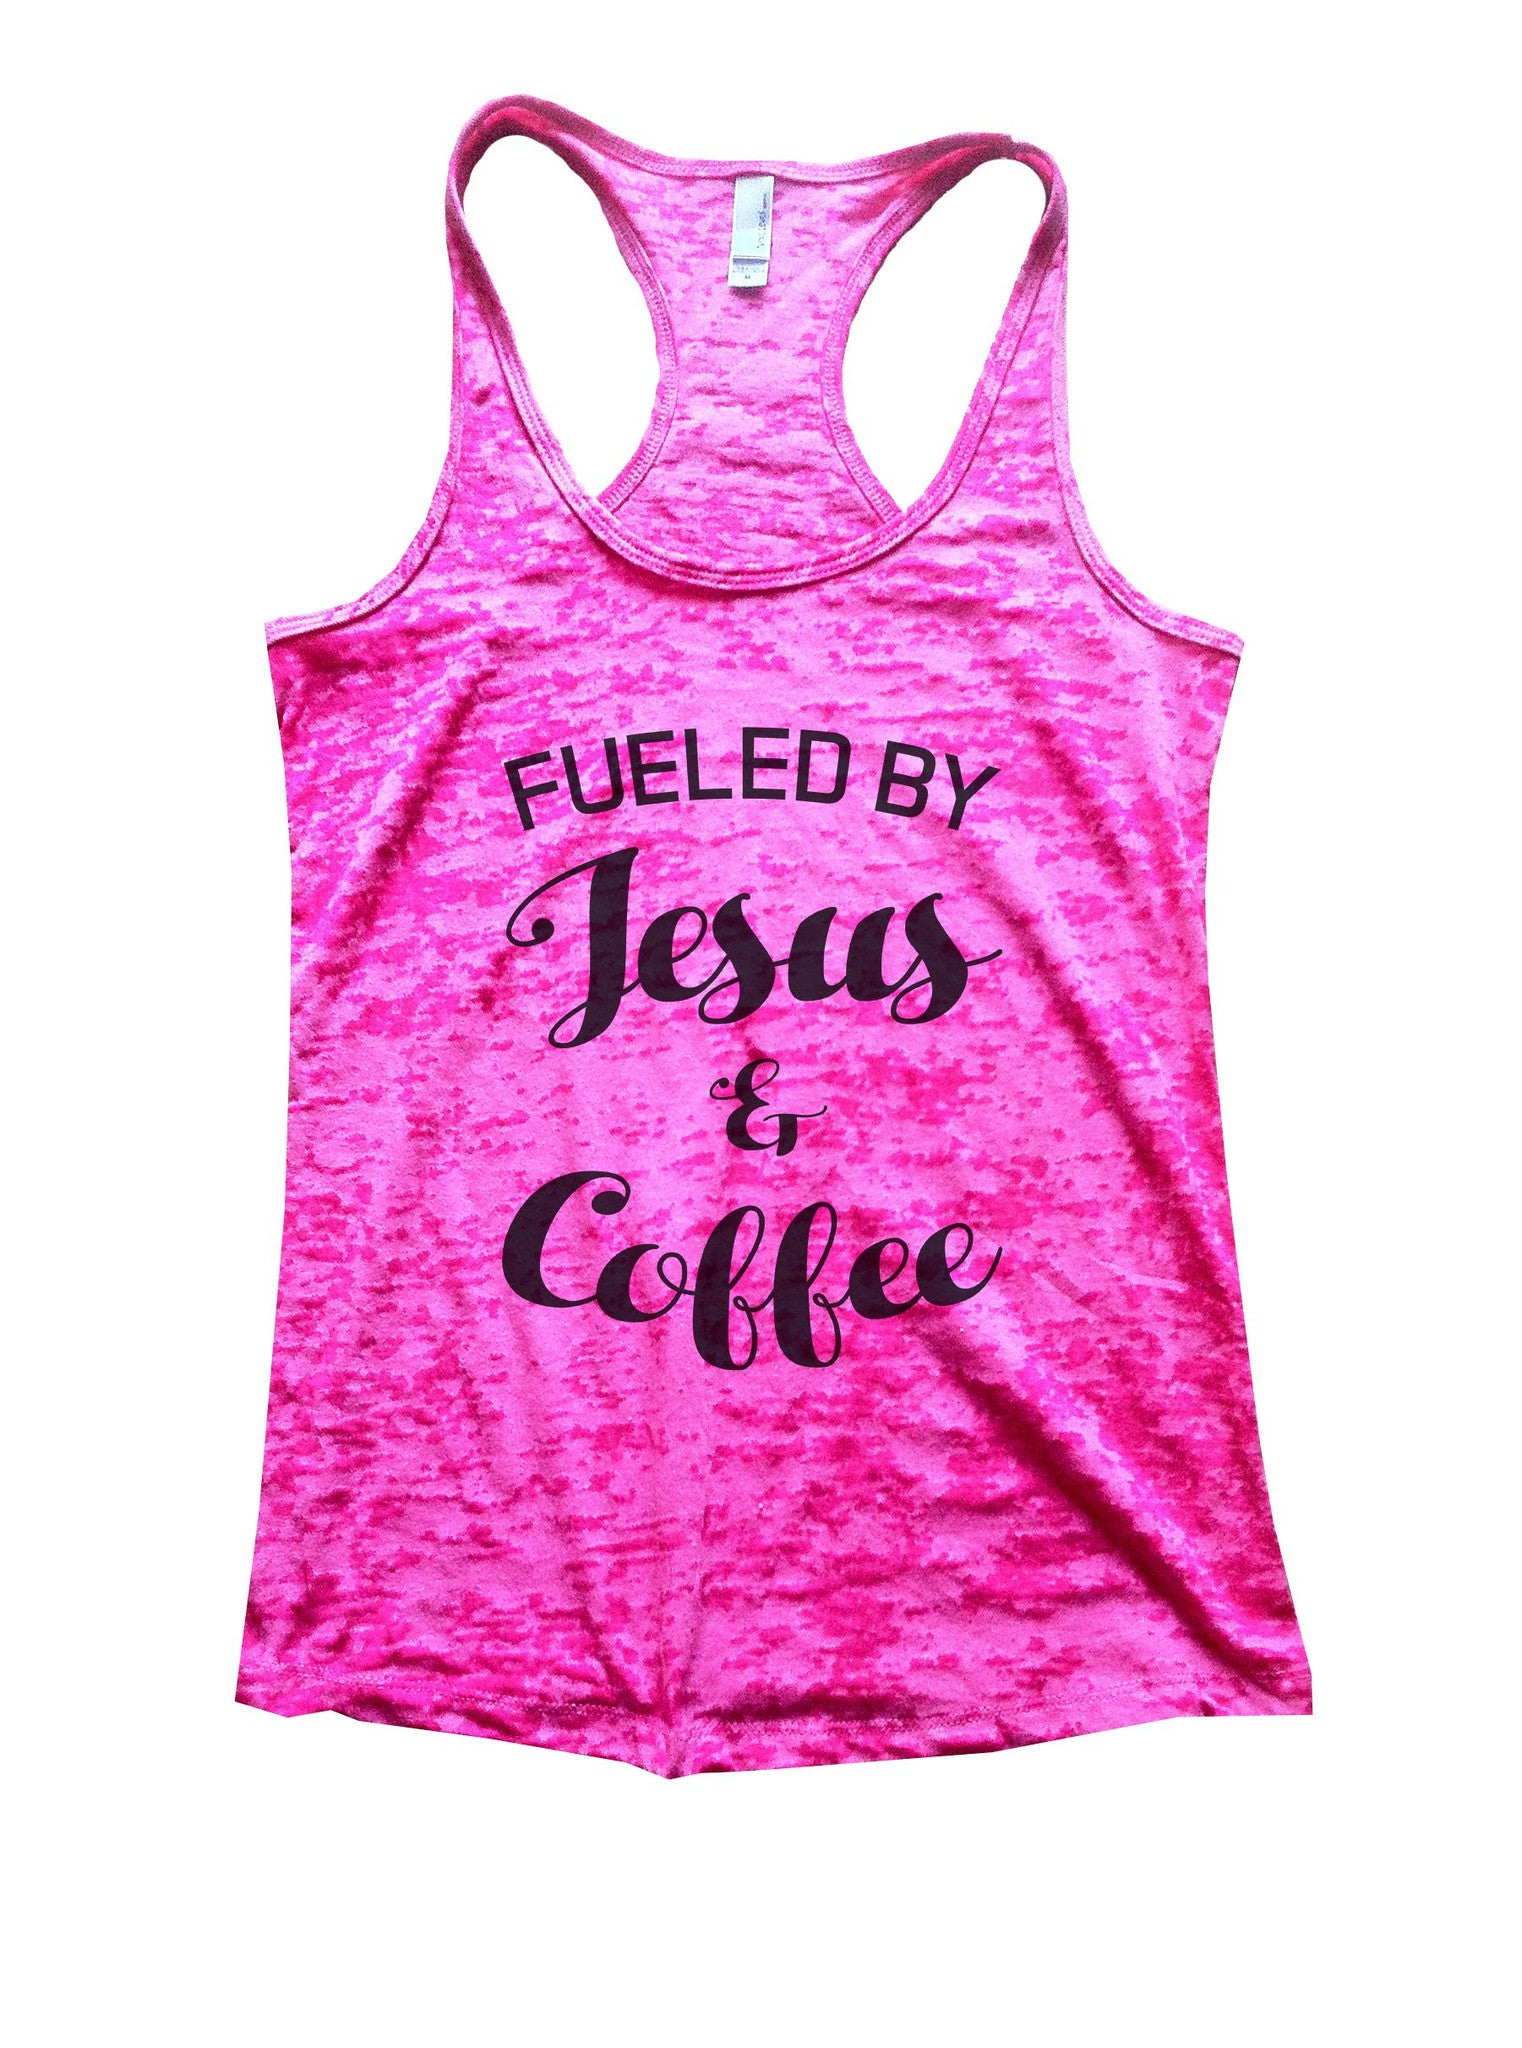 Fueled By Jesus & Coffee Burnout Tank Top By BurnoutTankTops.com - 1128 - Funny Shirts Tank Tops Burnouts and Triblends  - 1